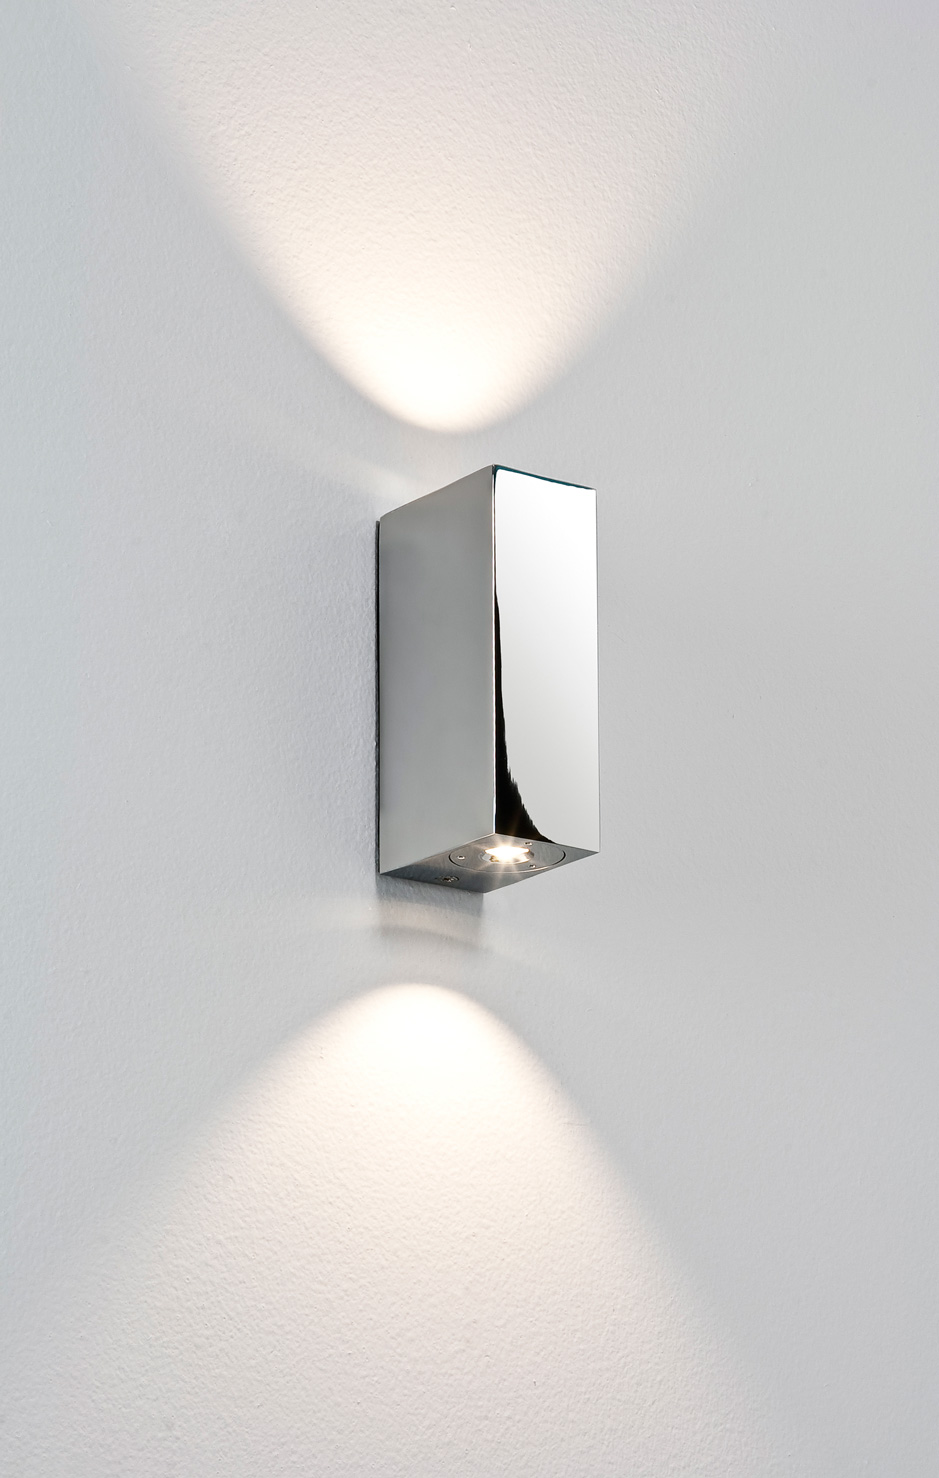 Astro Bloc Ip44 Bathroom Led Up Down Wall Light 3 4w 3000k Warmwhite Chrome Liminaires